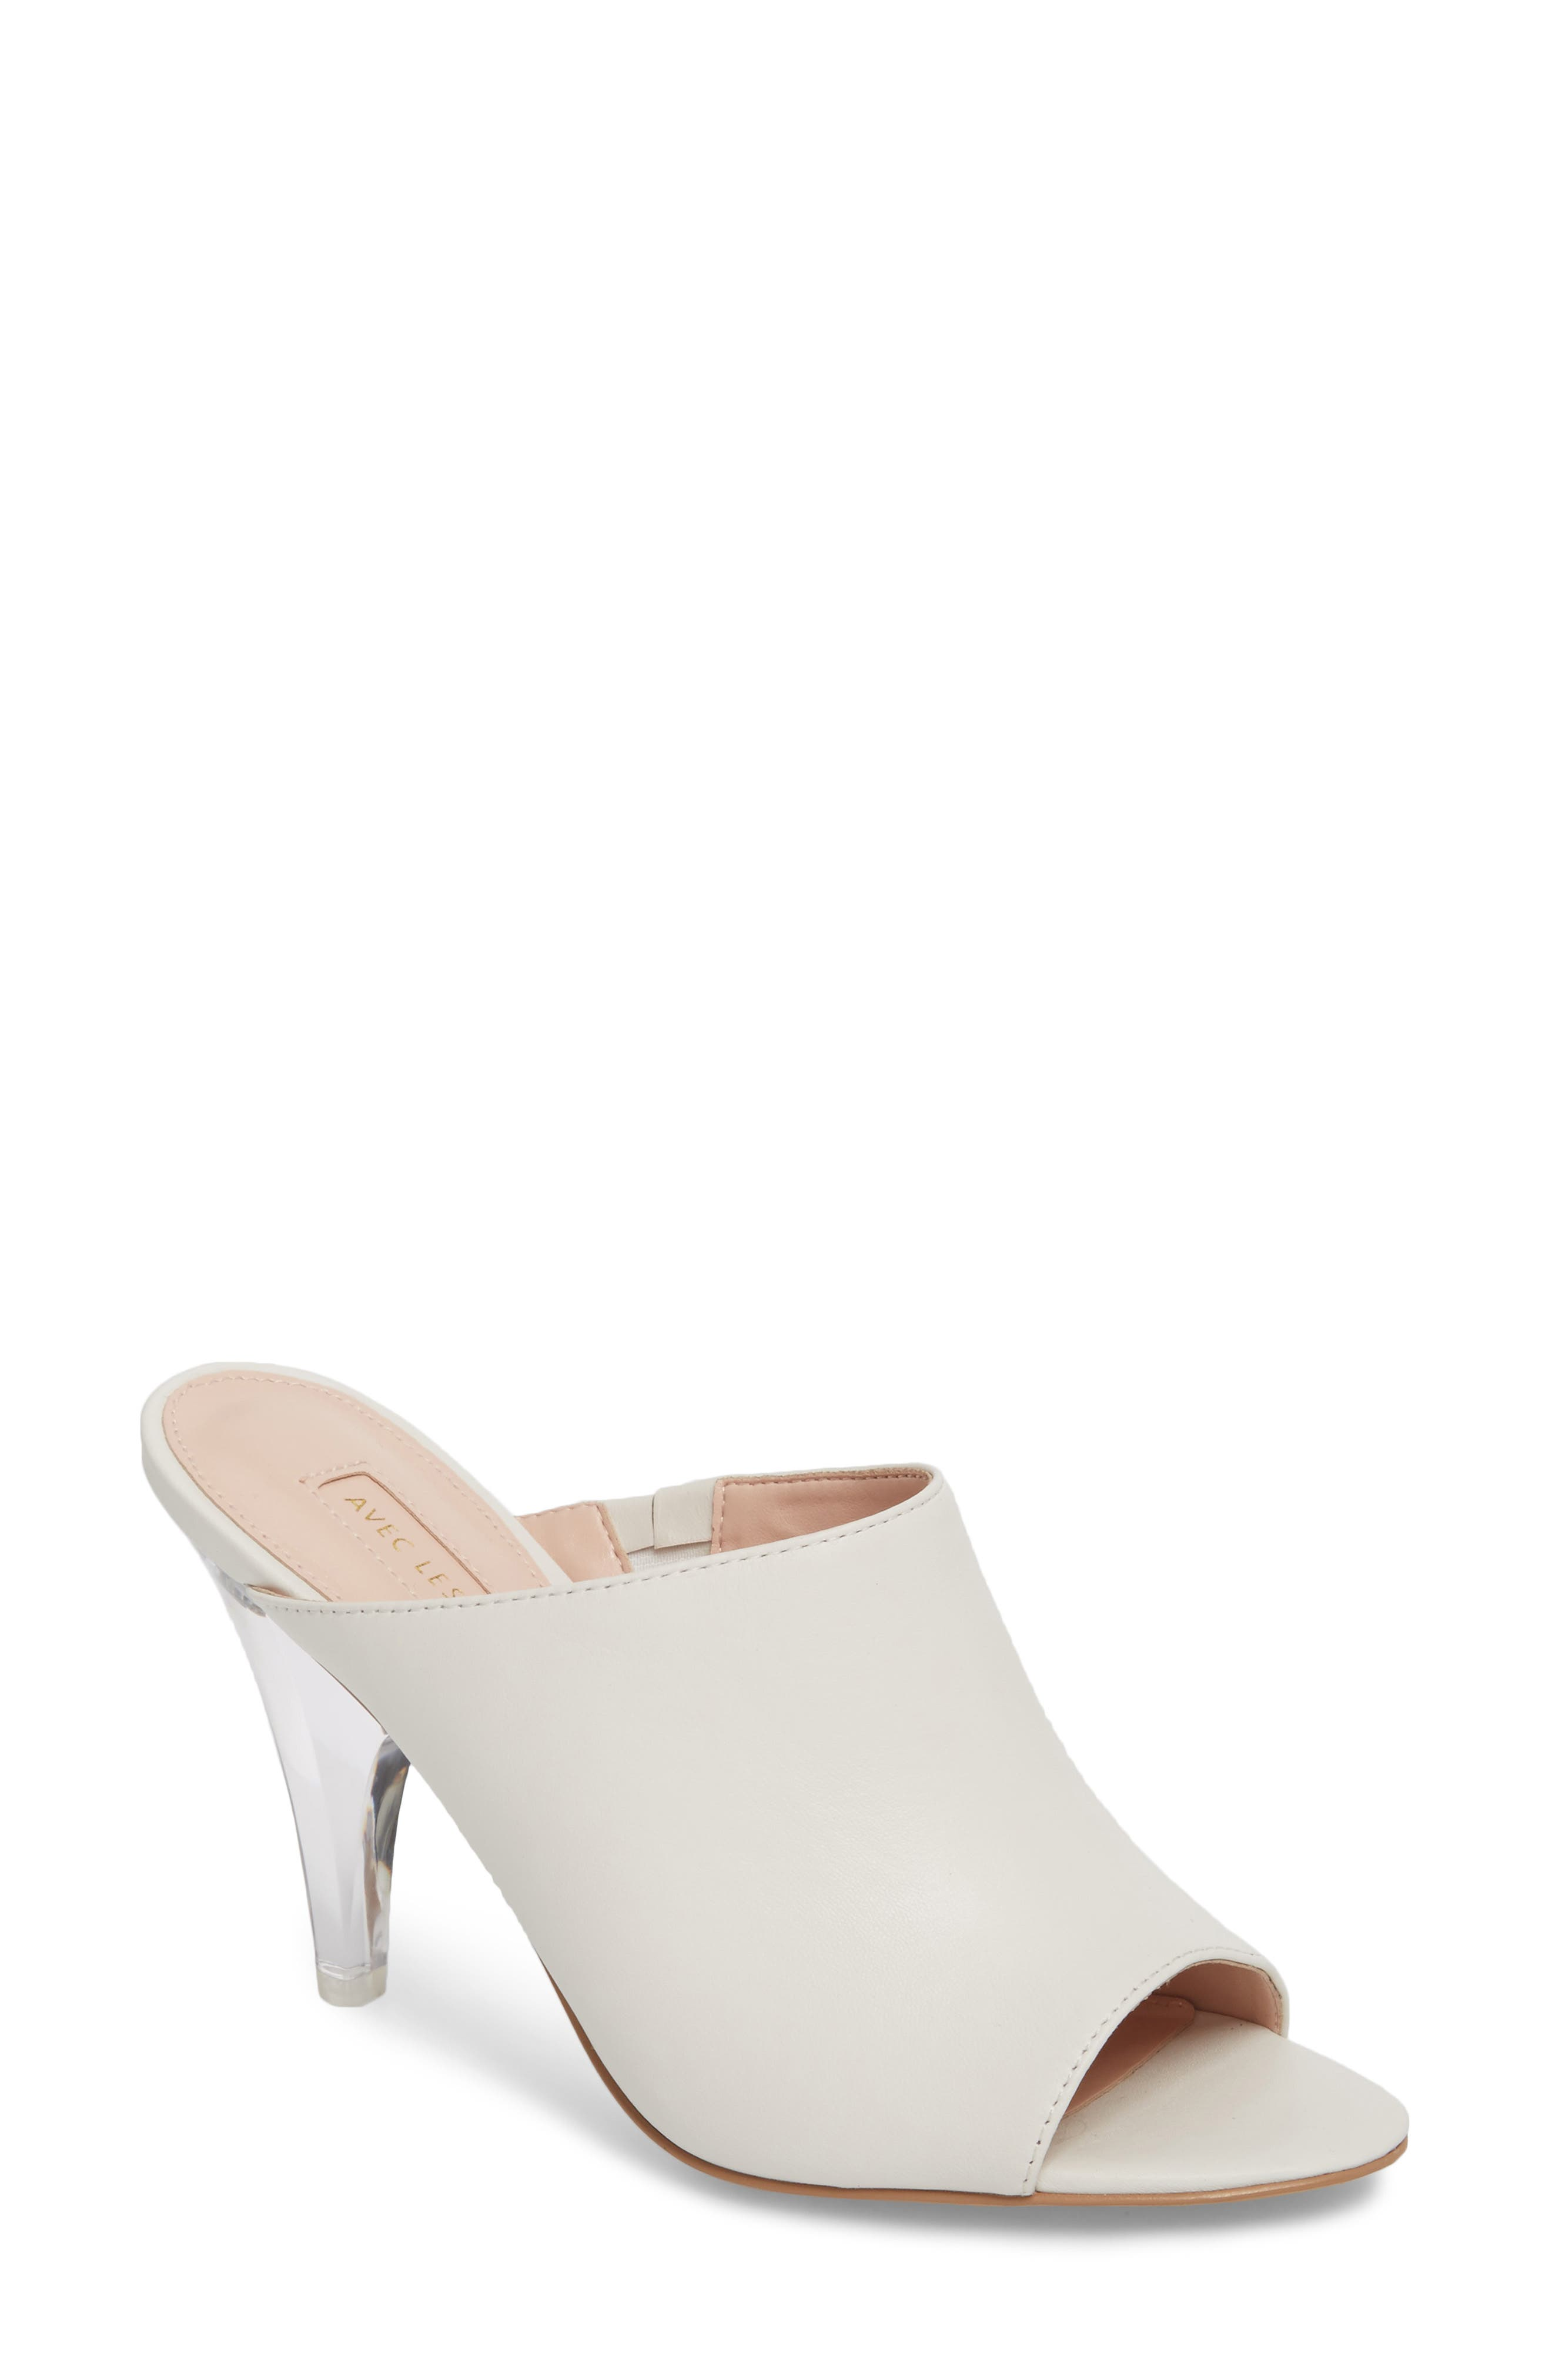 Jazz Off Sandal,                         Main,                         color, Off White Leather